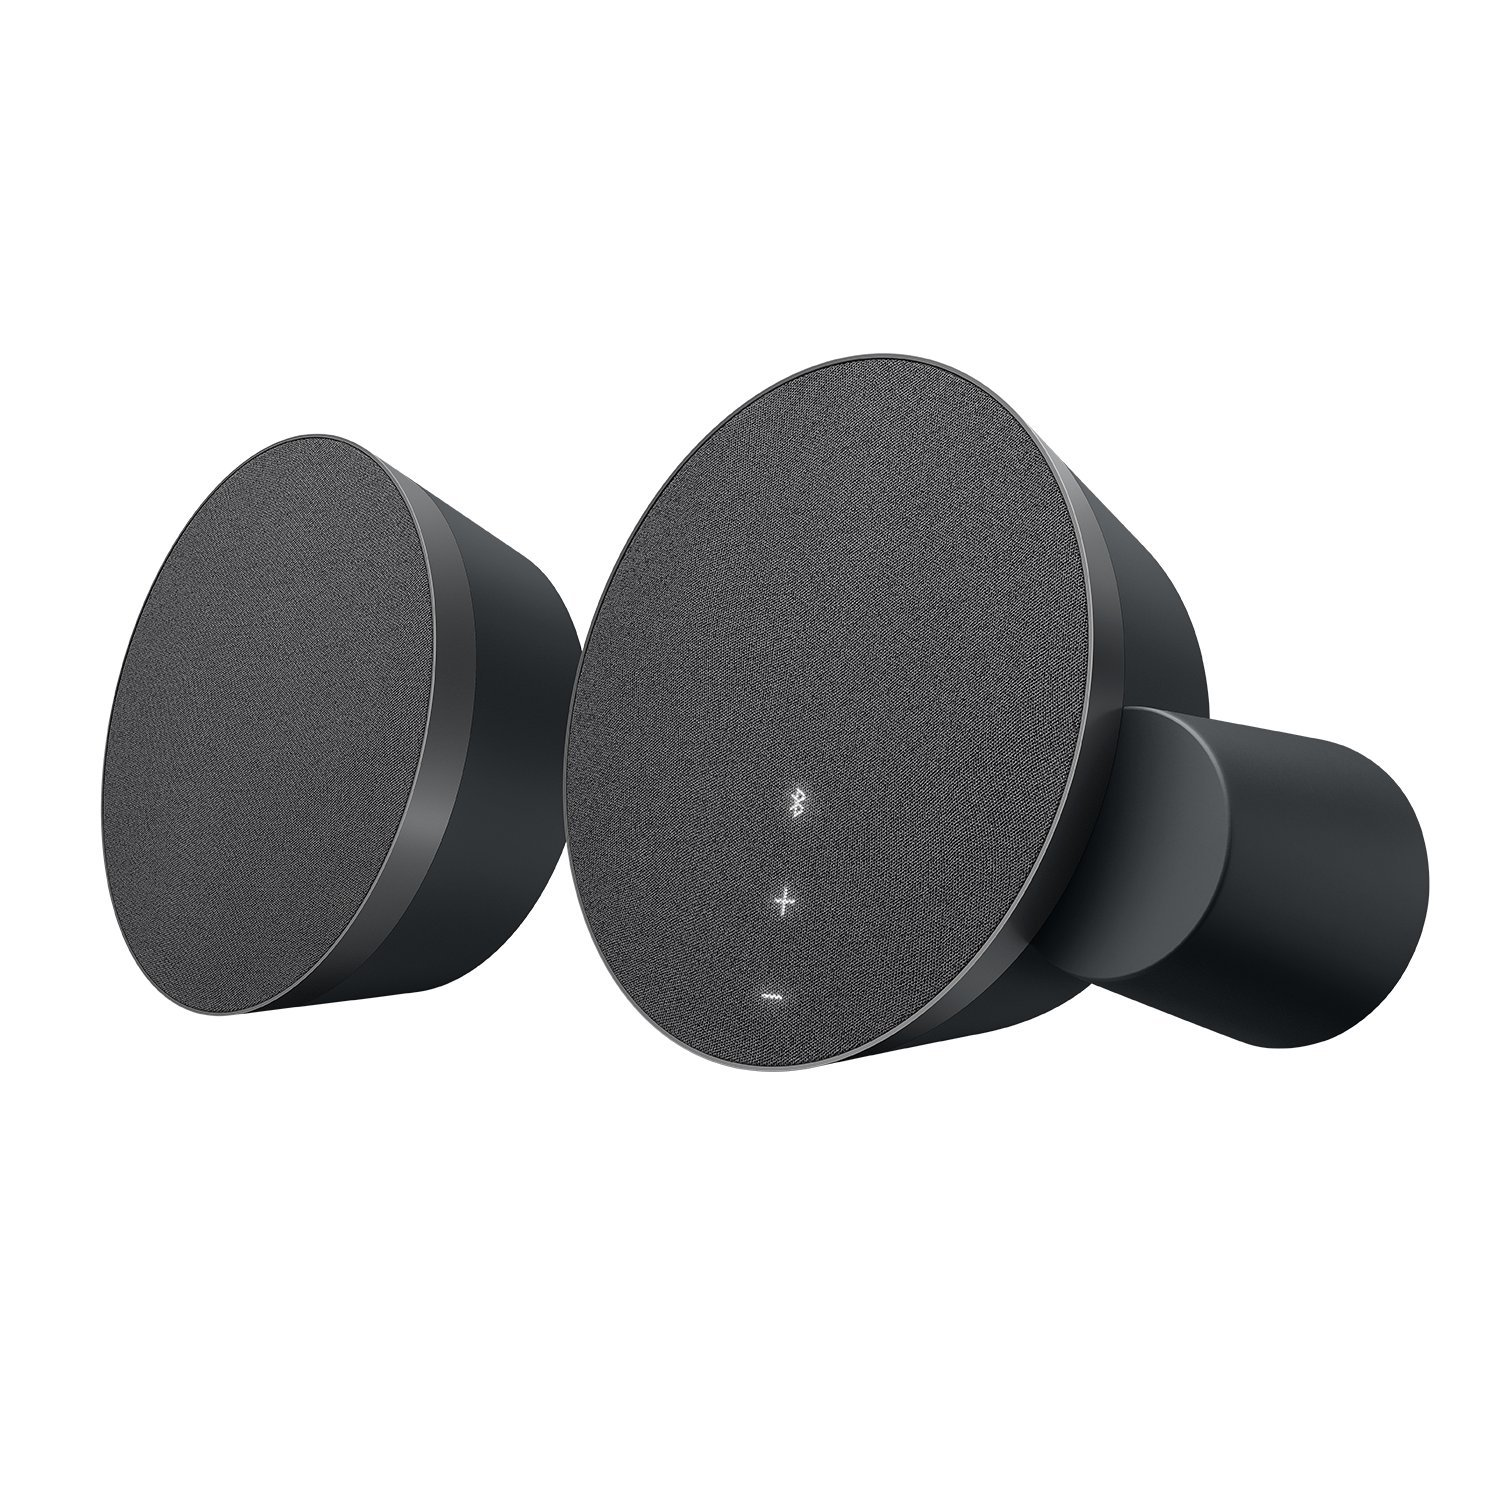 Cheap Logitech Speakers 2 0 Find Deals On Z120 Usb Stereo Speaker For Laptop Notebook Pc Get Quotations Mx Sound 20 Multi Device With Premium Digital Audio Desktop Computers